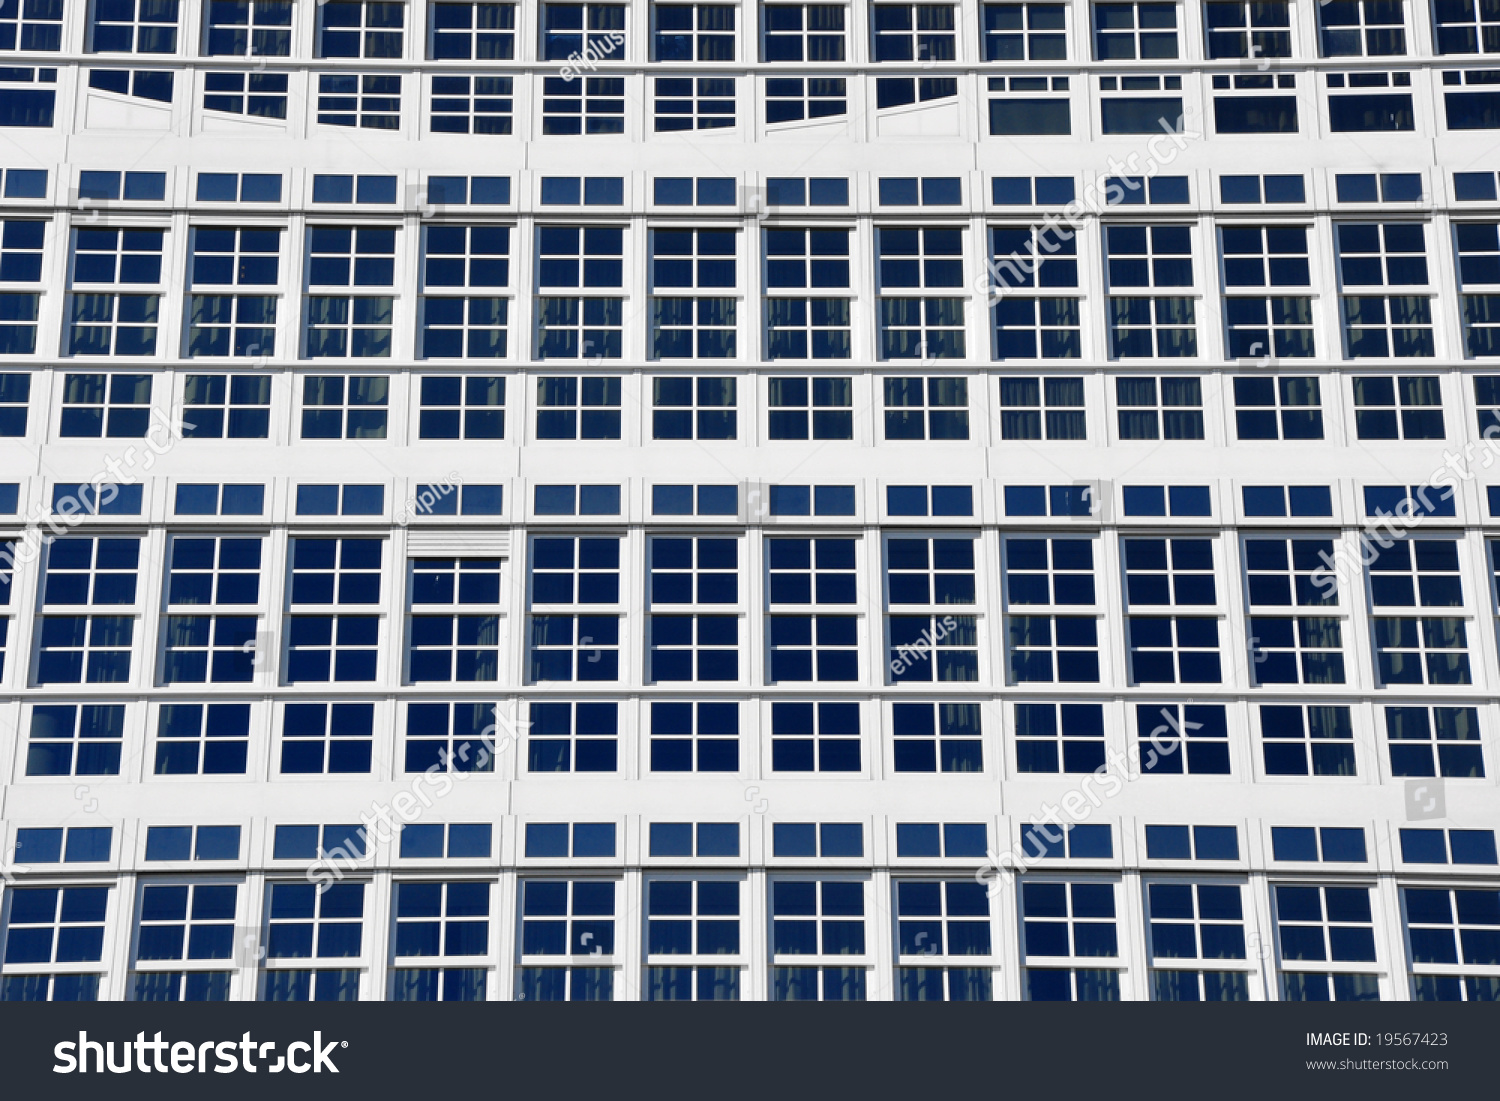 Glass facade texture  Glass Facade Texture Stock Photo 19567423 - Shutterstock